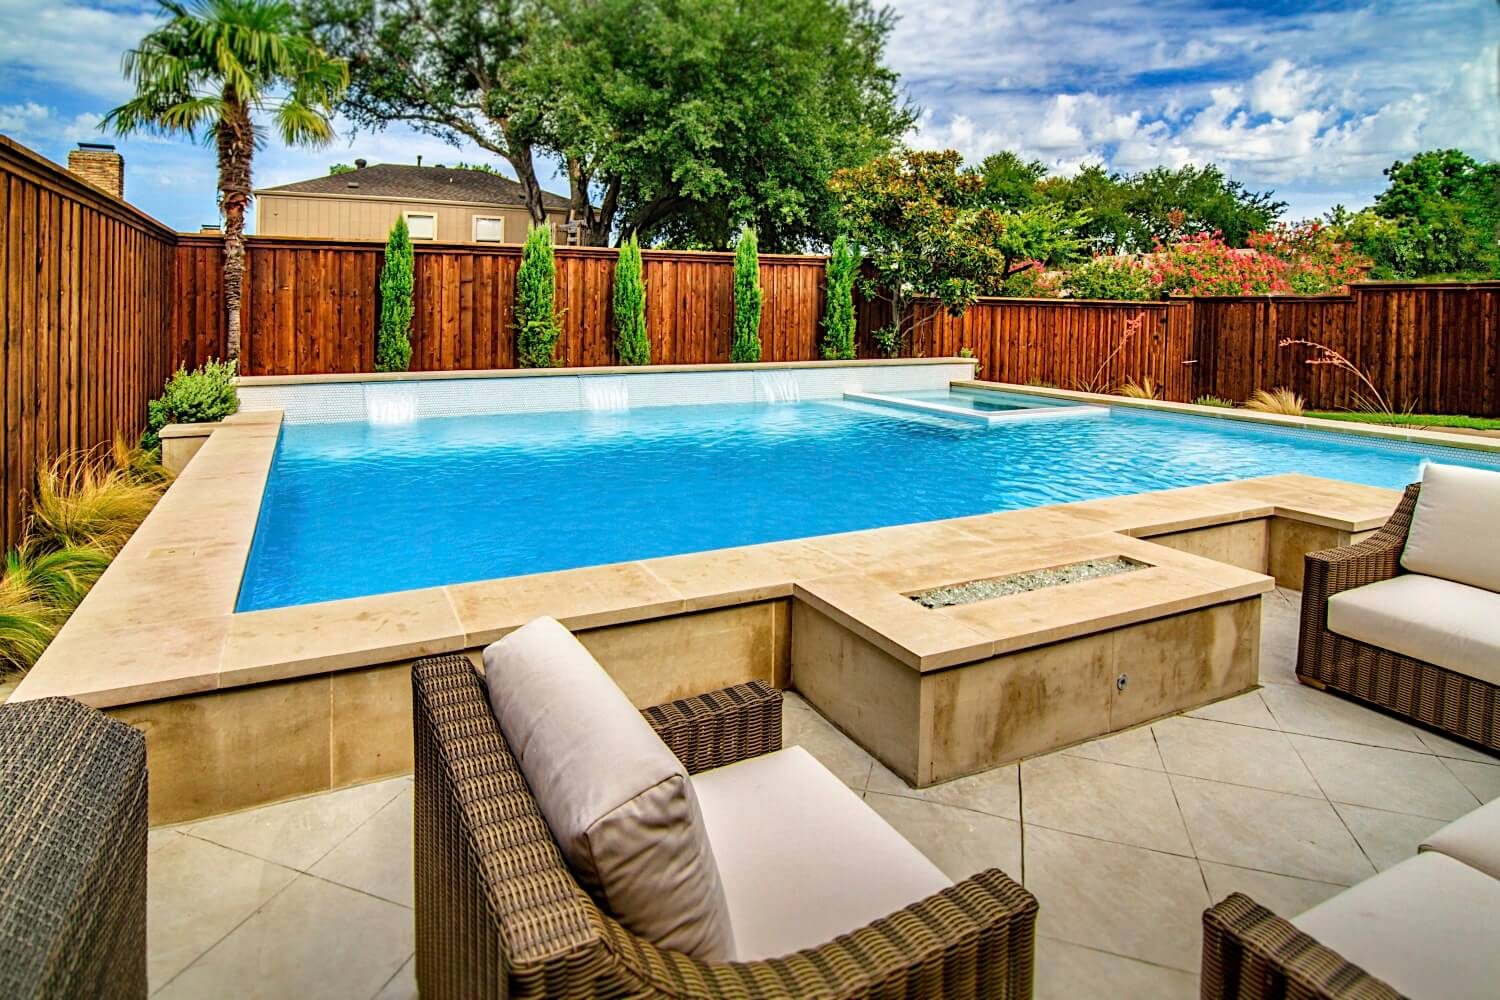 Choosing the Right North Texas Pool Builder